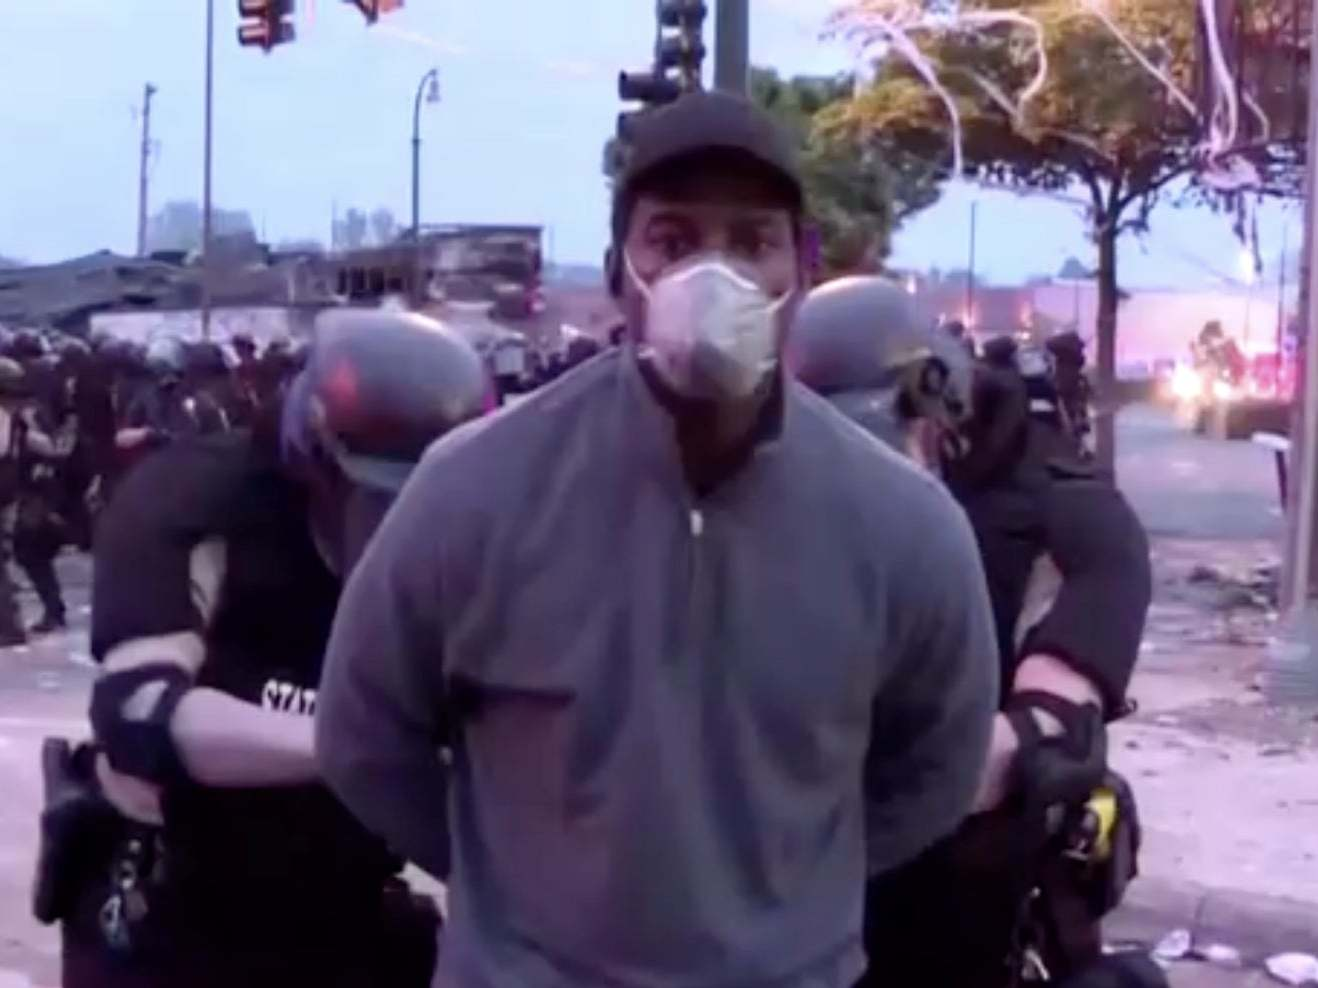 George Floyd protests: CNN reporter arrested live on air still not given a reason upon release